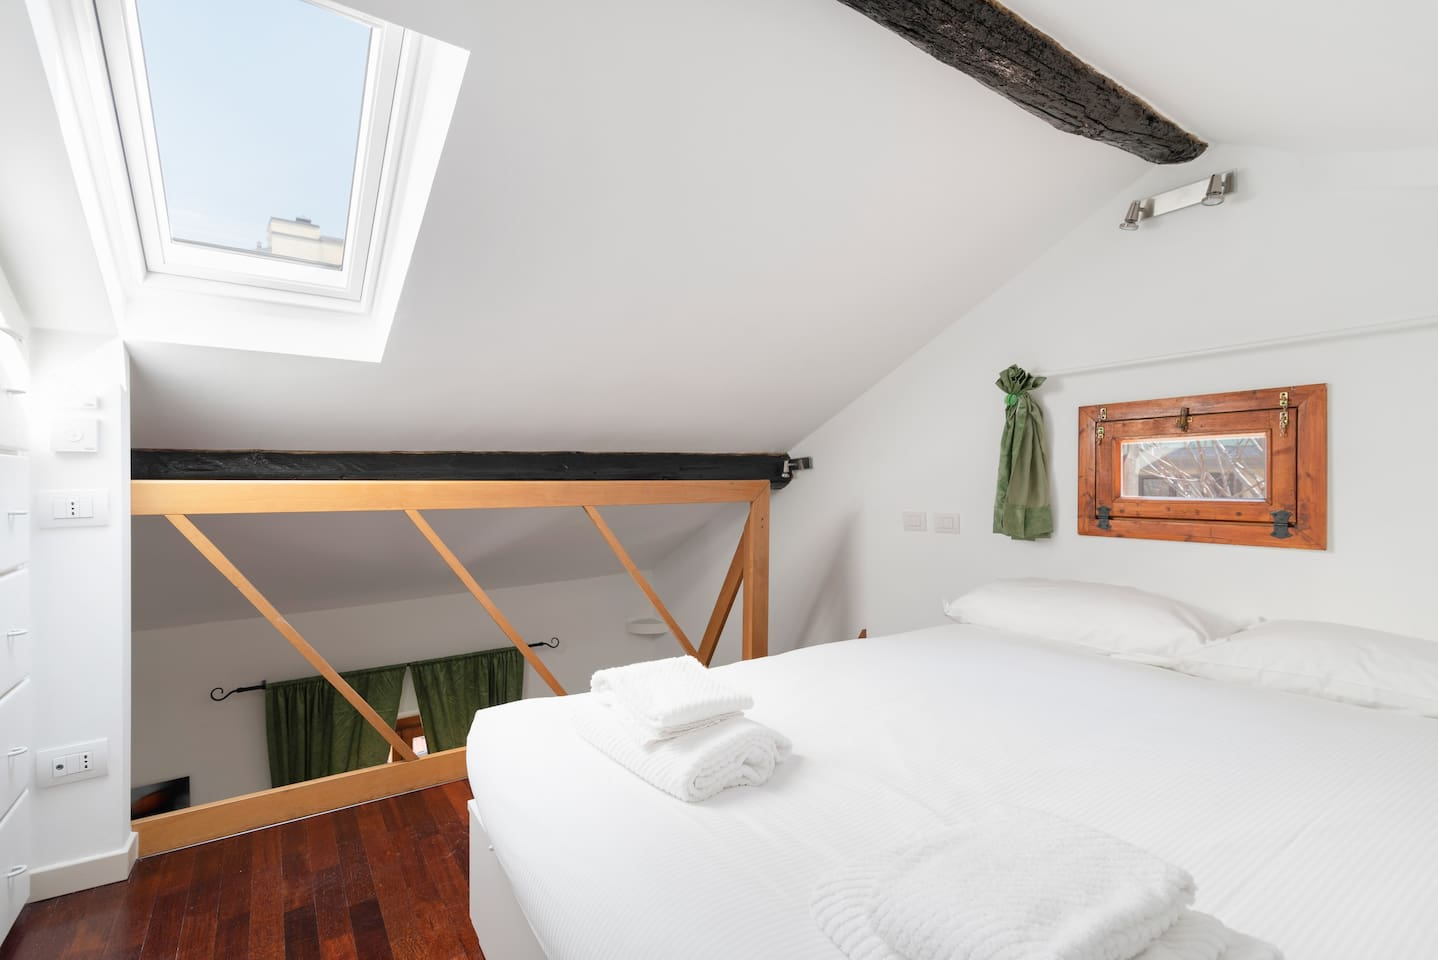 - The Attic with the comfortable double bed with soft bed- linen and towels-